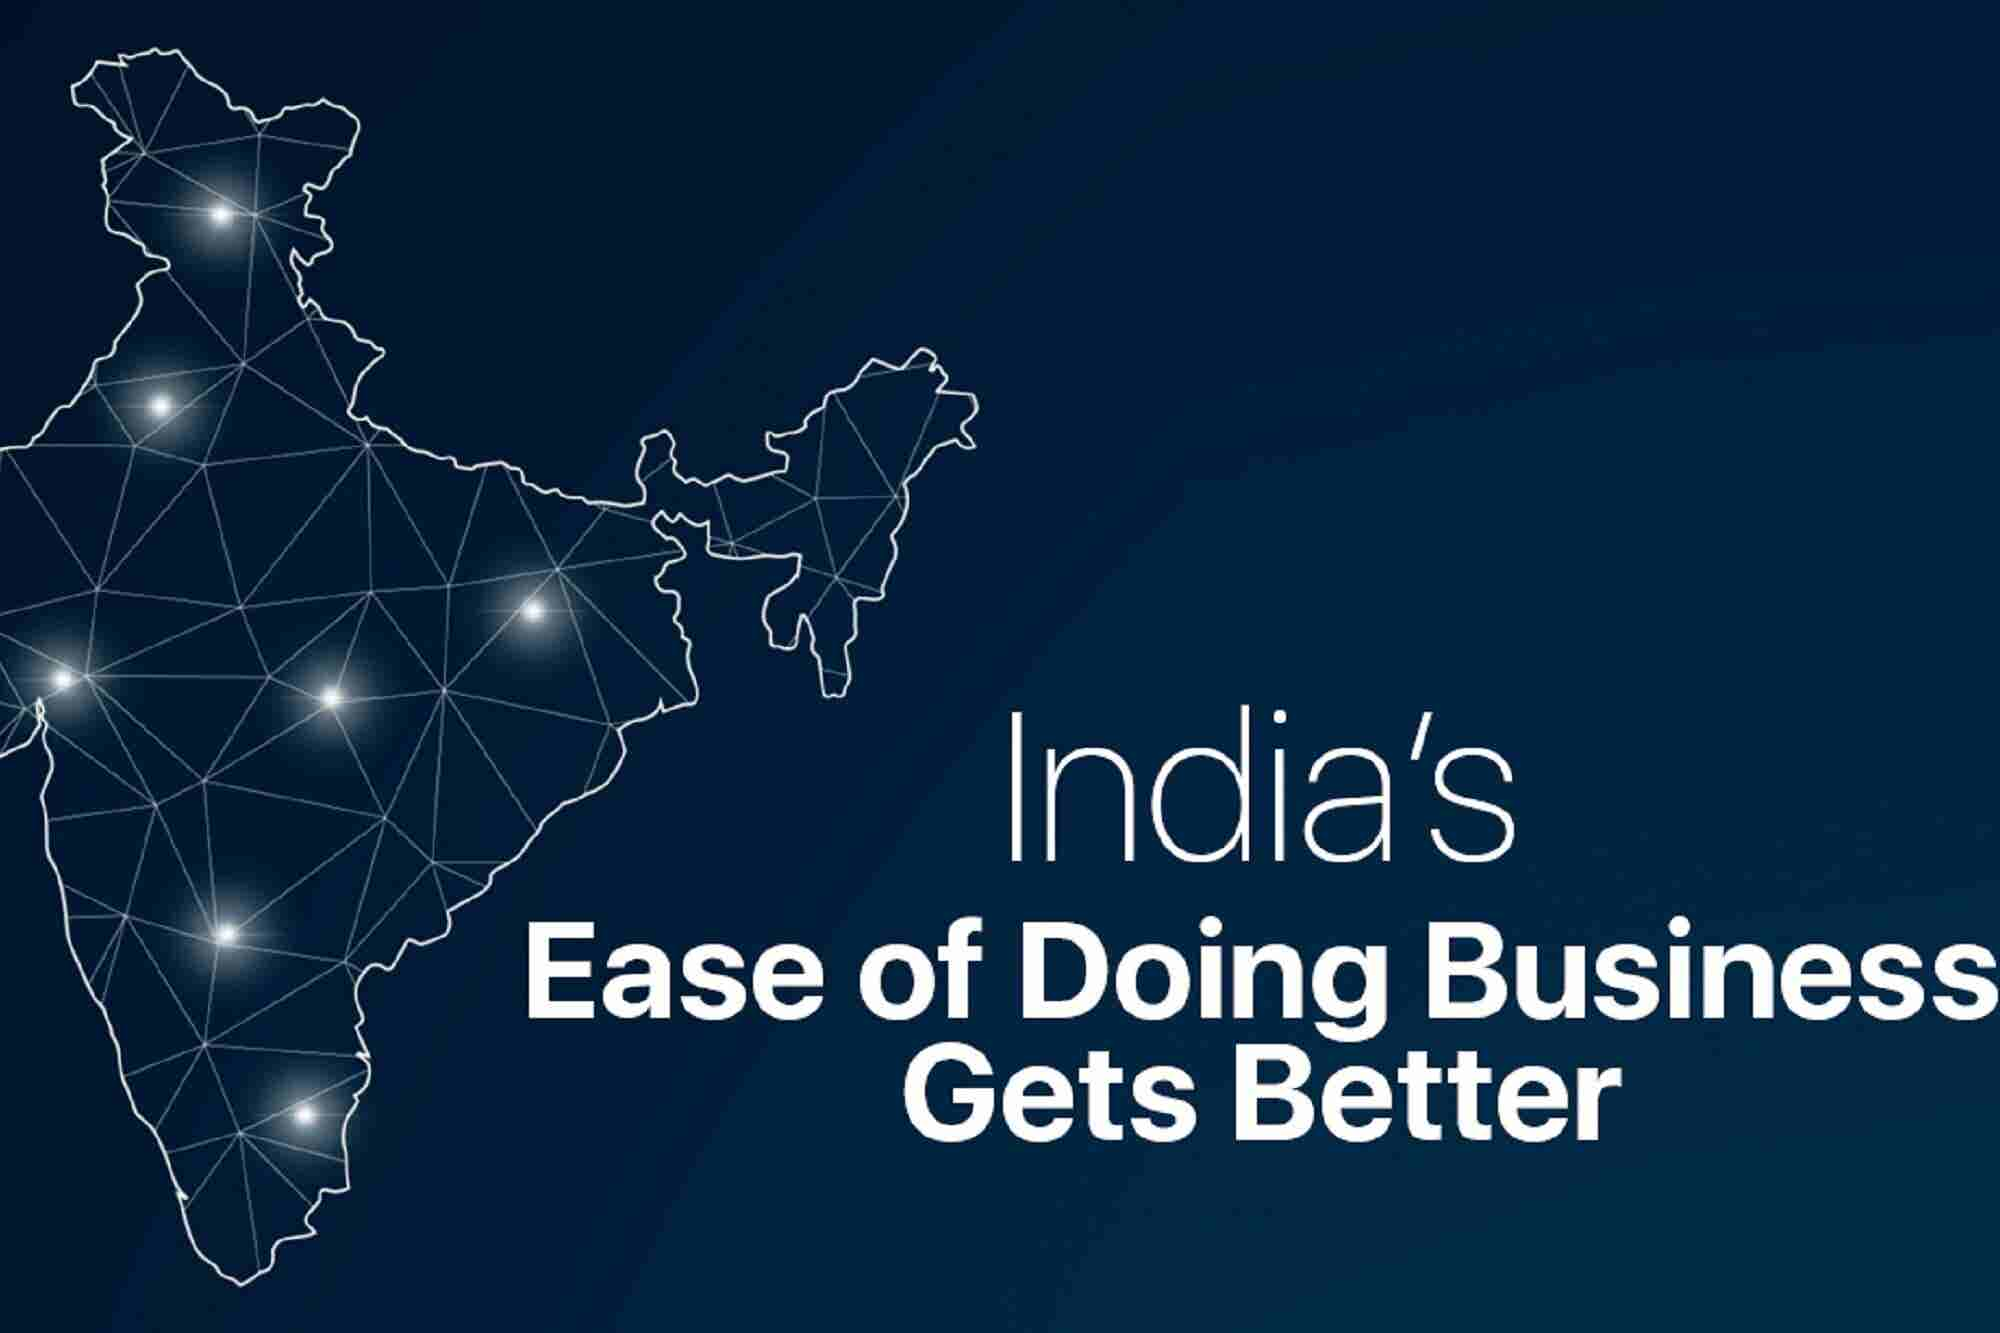 India's Ease of Doing Business Gets Better & Google Employees' Revolt: 4 Things to Know Today